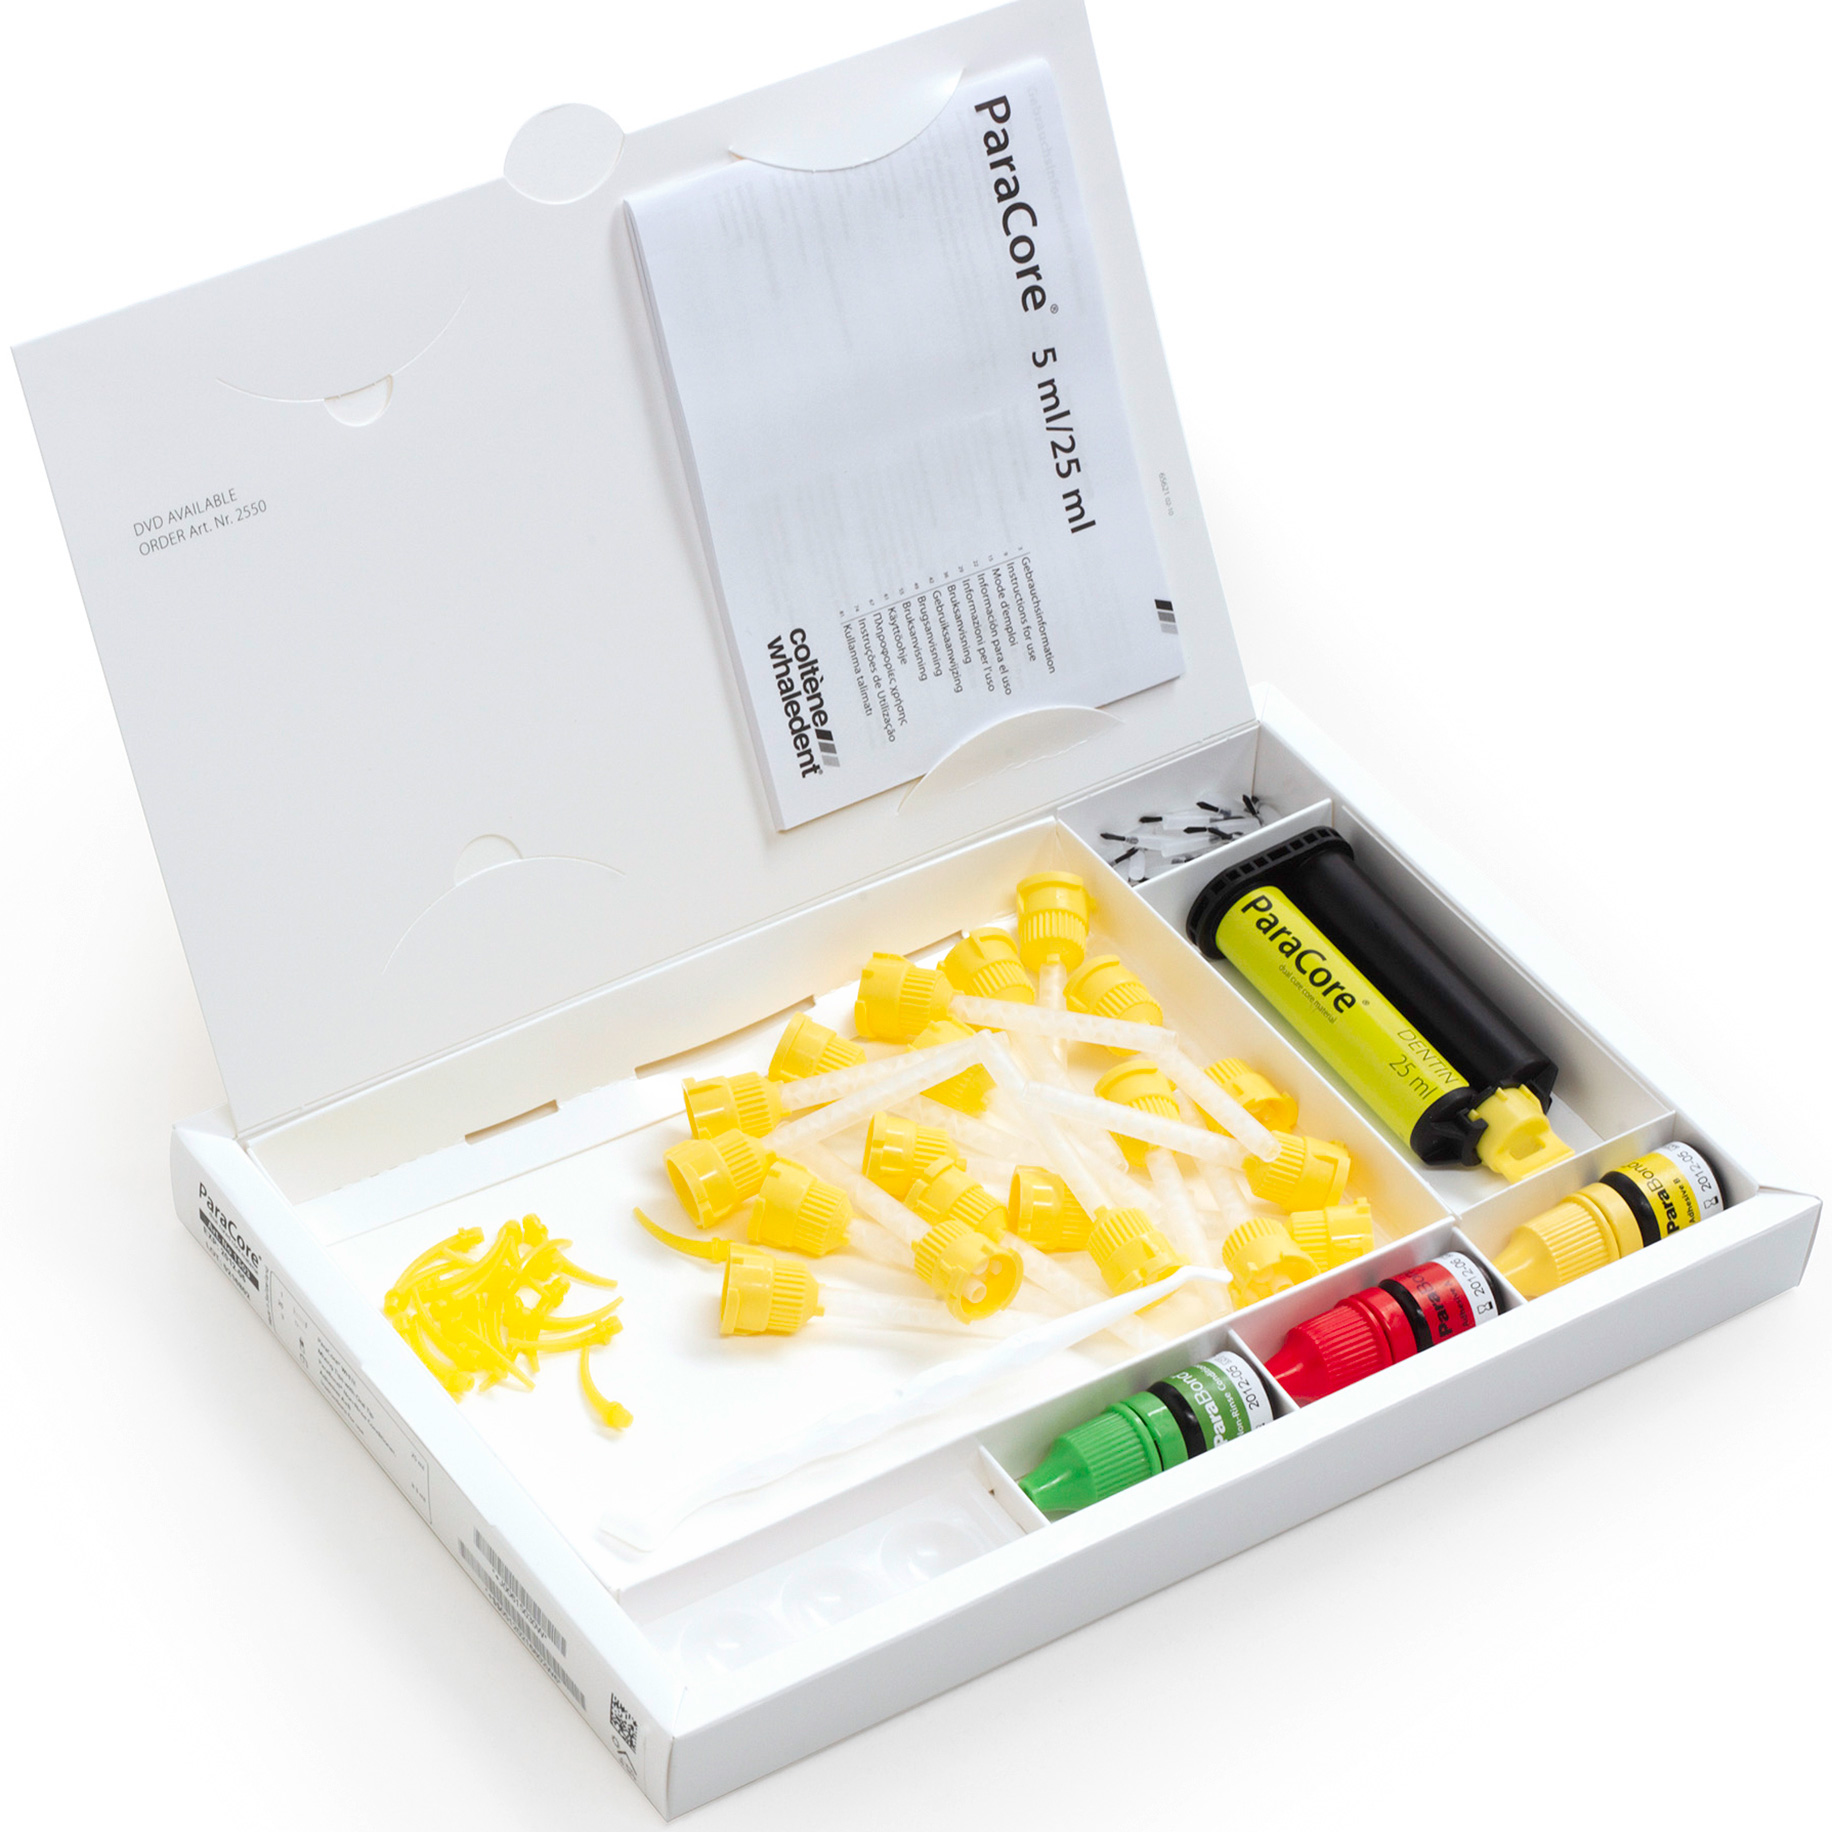 ParaCore Automix Dentin Intro Kit